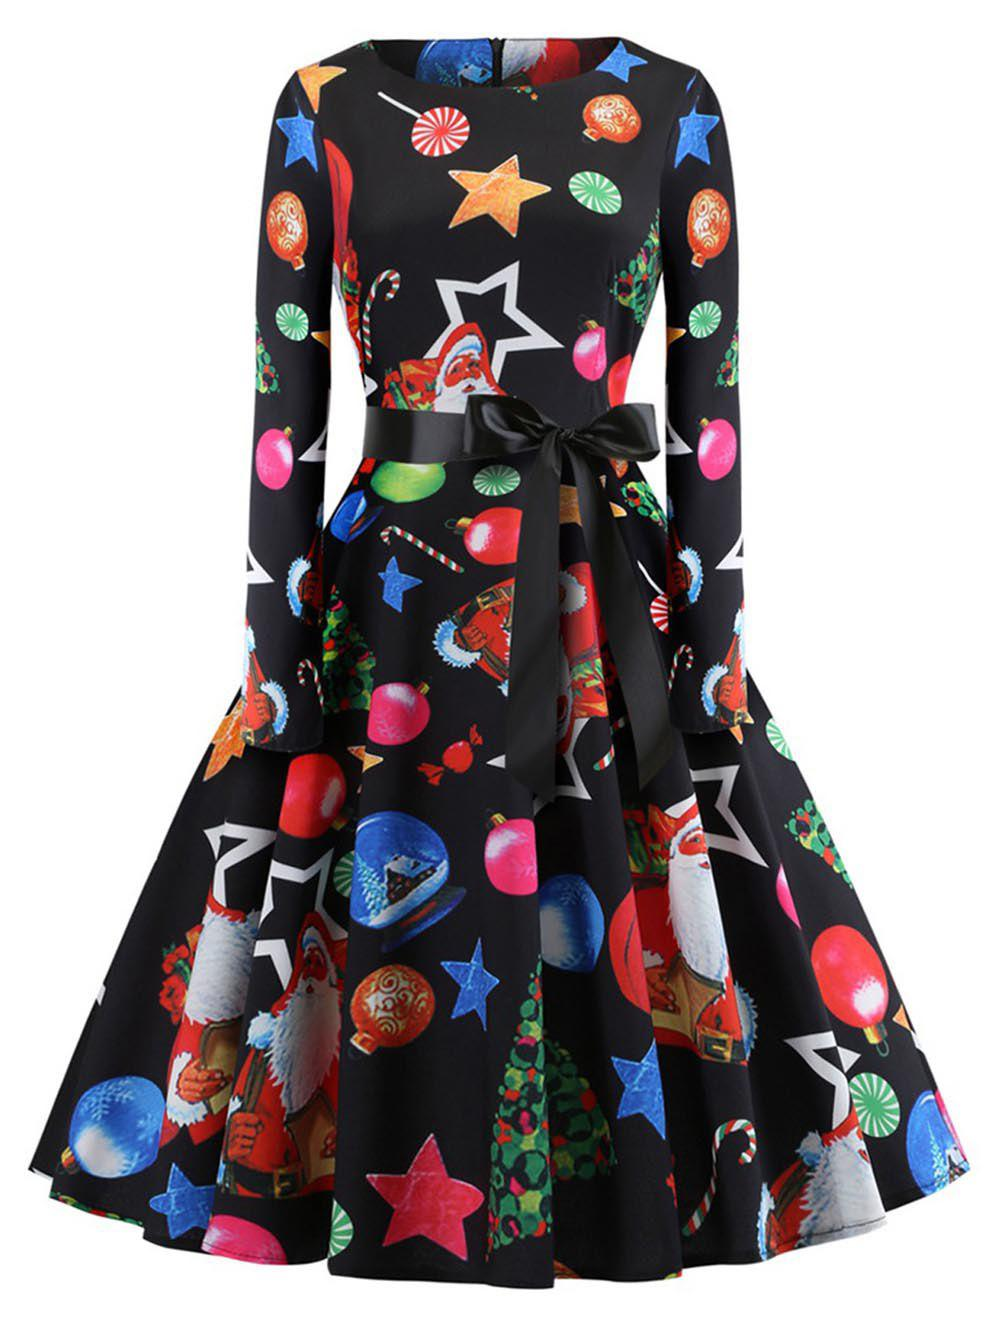 Affordable Hepburn Vintage Series Women Dress Spring And Summer Round Neck Christmas Printing Design Long Sleeve Belt Corset Dress